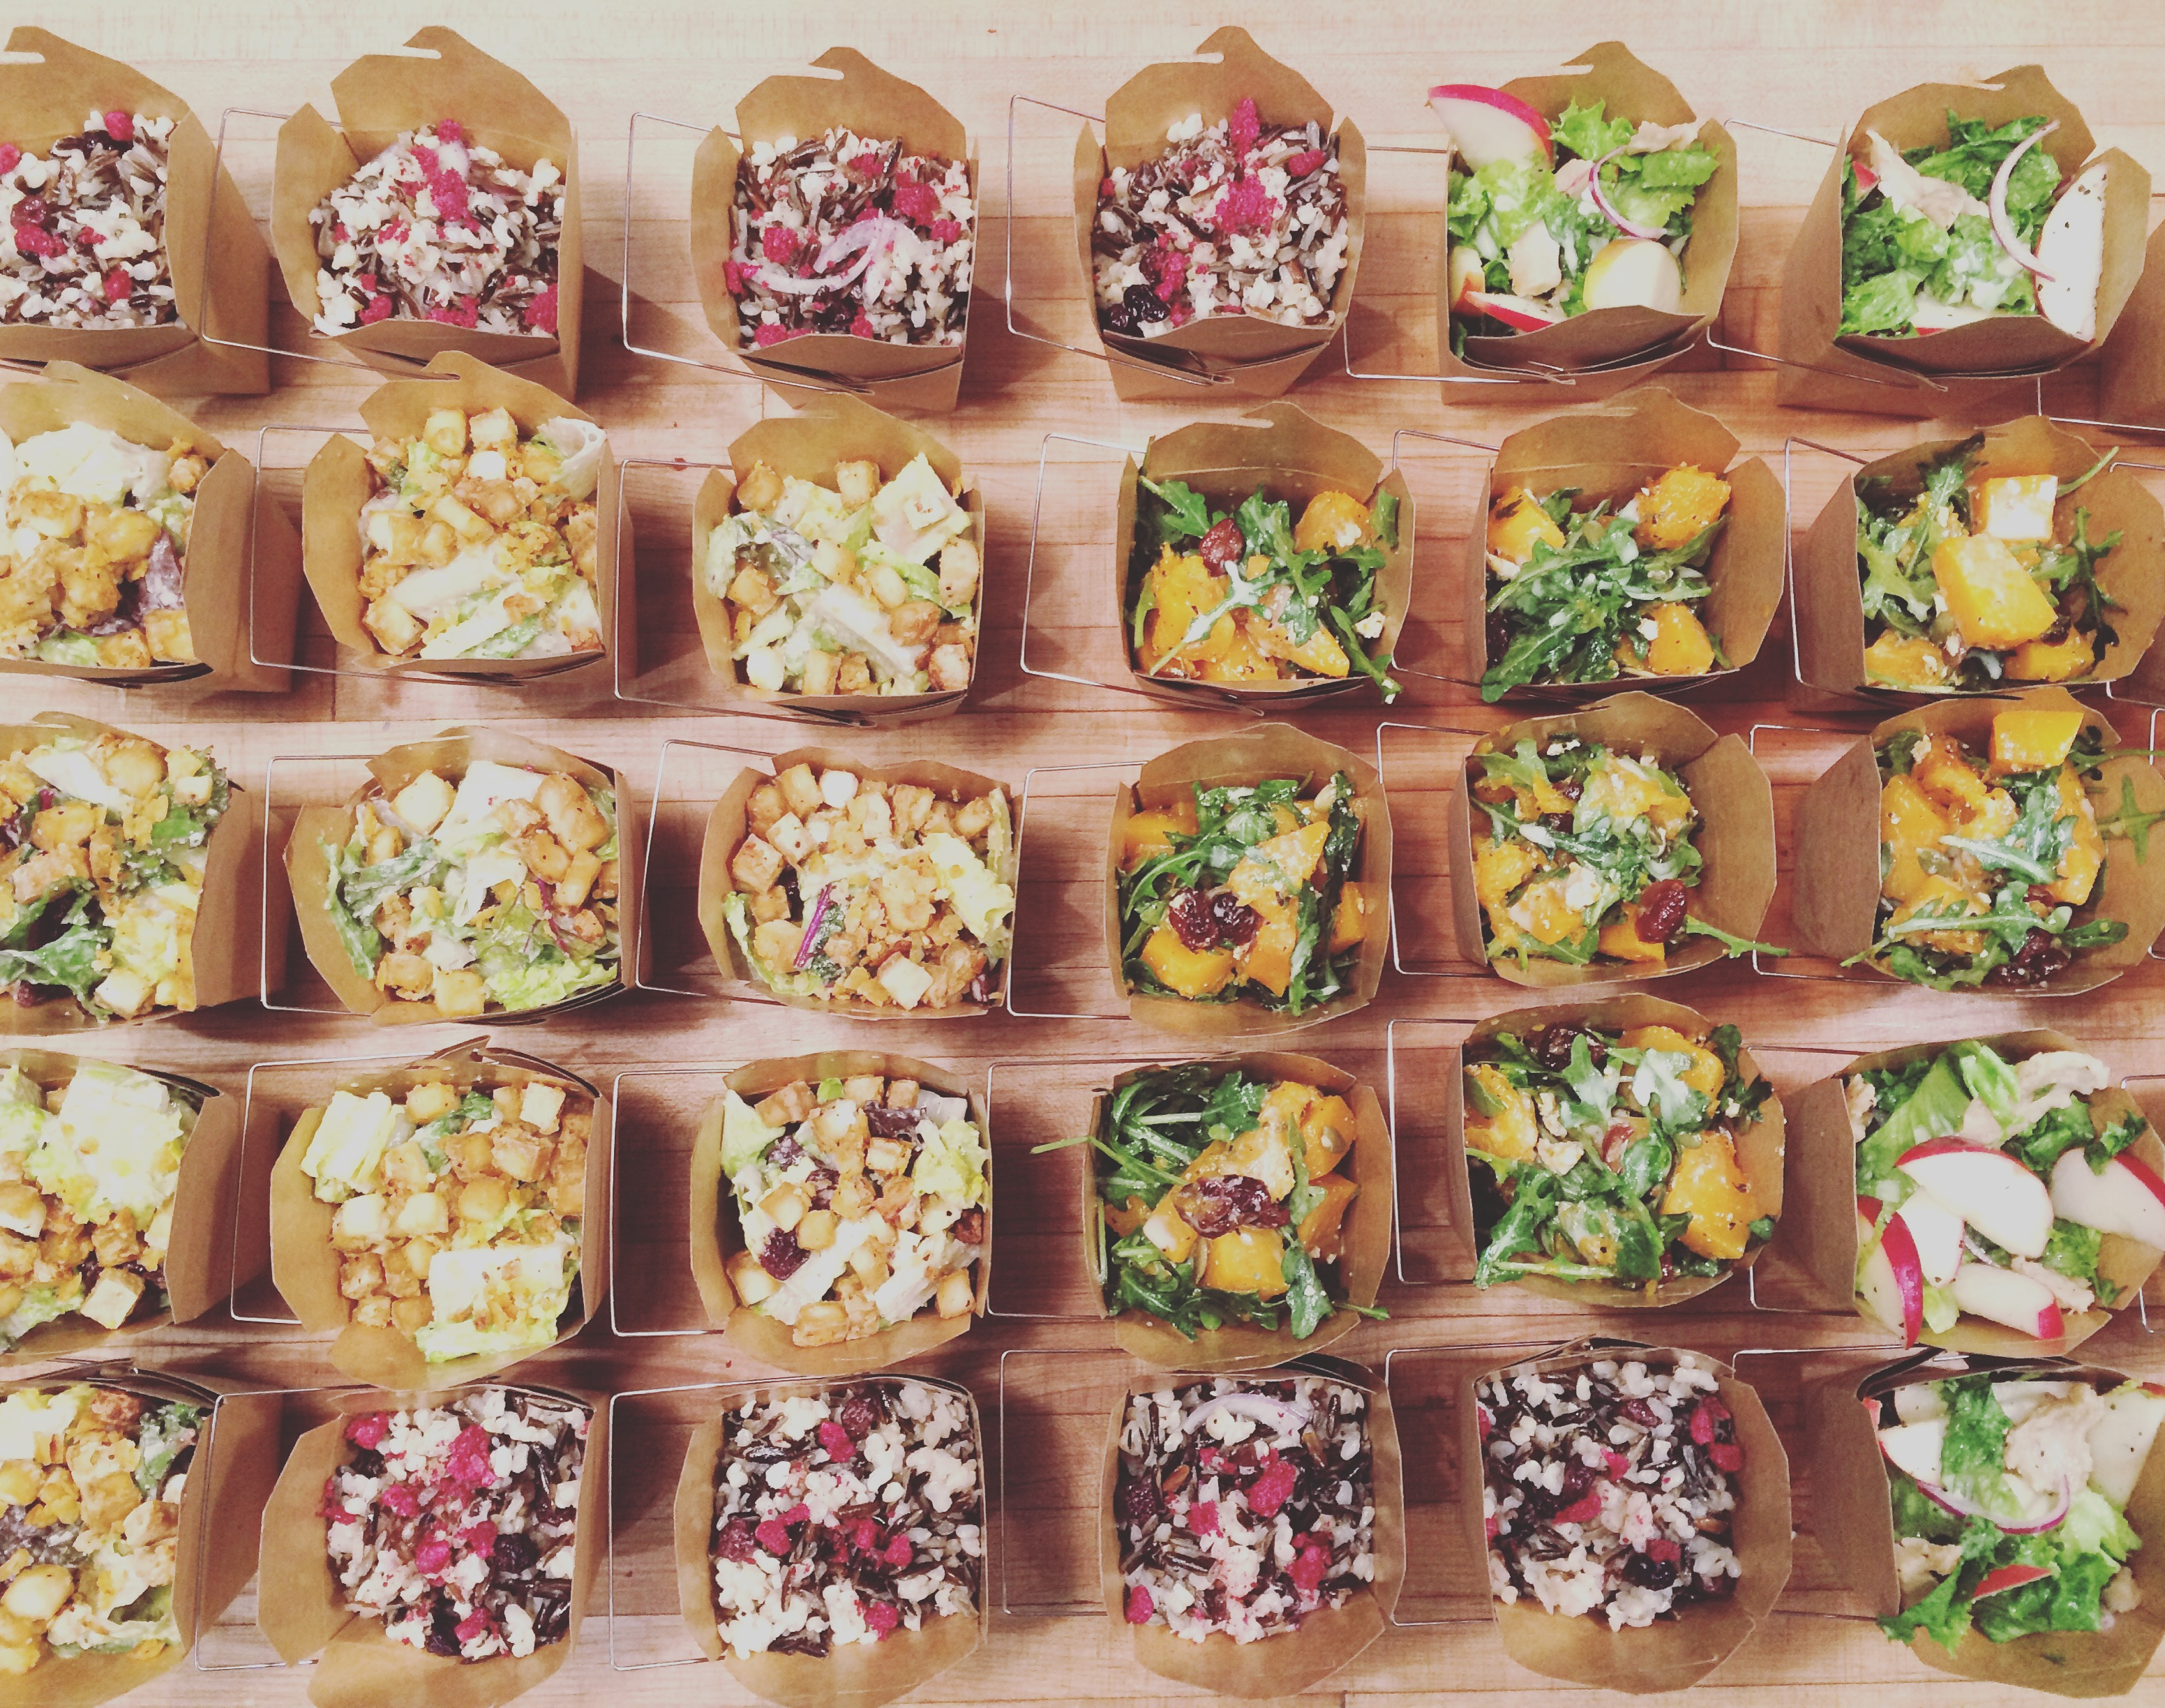 We Love To Cater Events, Parties, Office Lunches And Special Occasions!  Have A Look At Our Instagram Hashtag For Some Ideas: #fggcatering